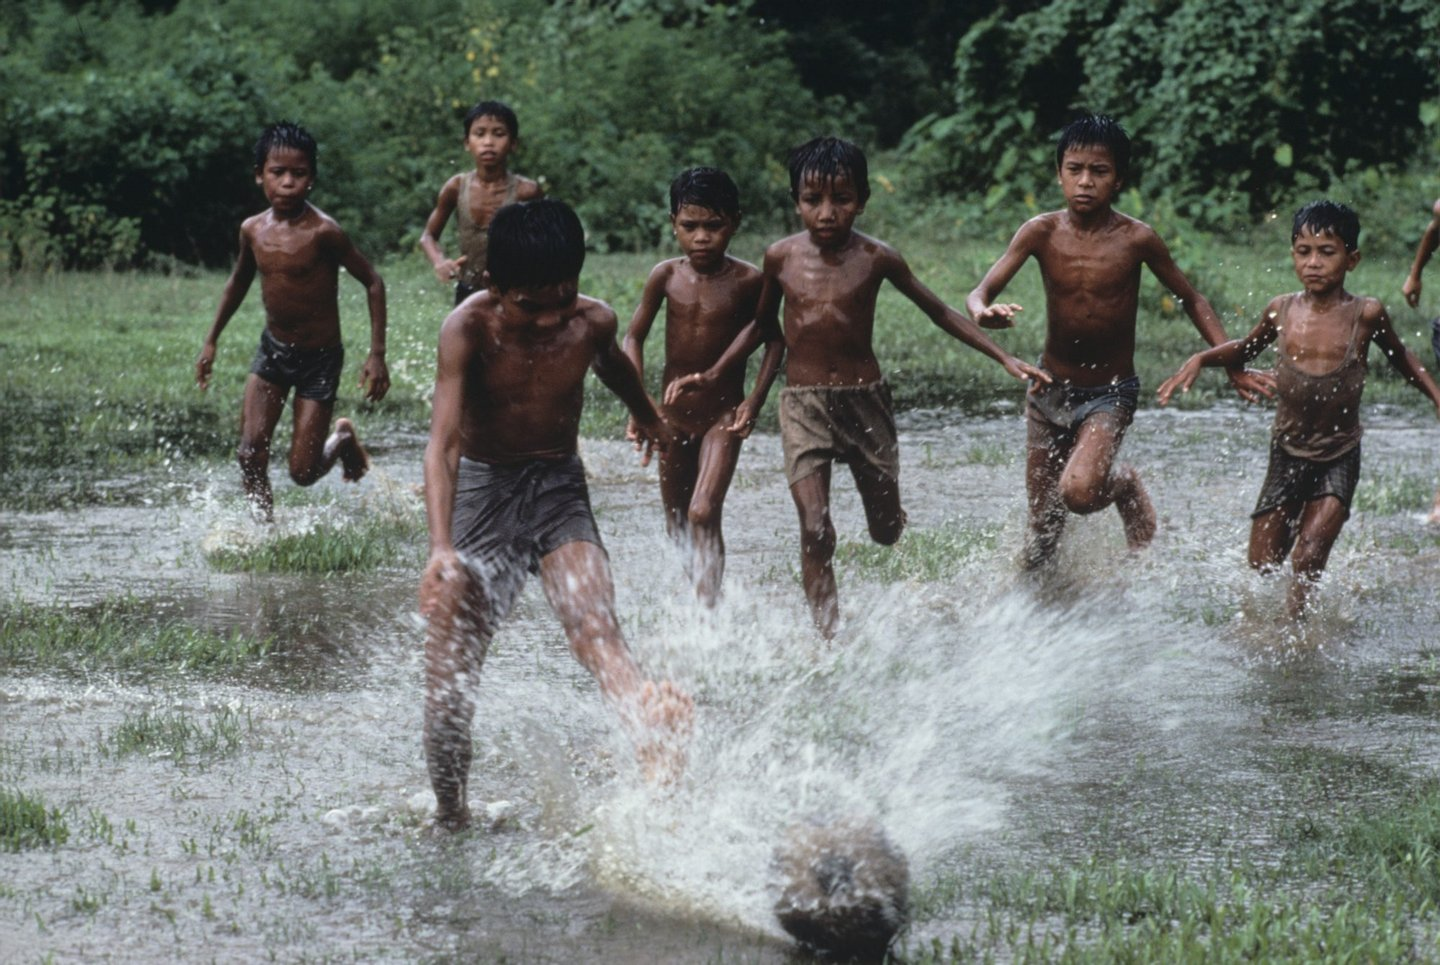 1983, BANGLADESH-10006.jpg, Bangladesh, boys, green, play, puddle, run, water,